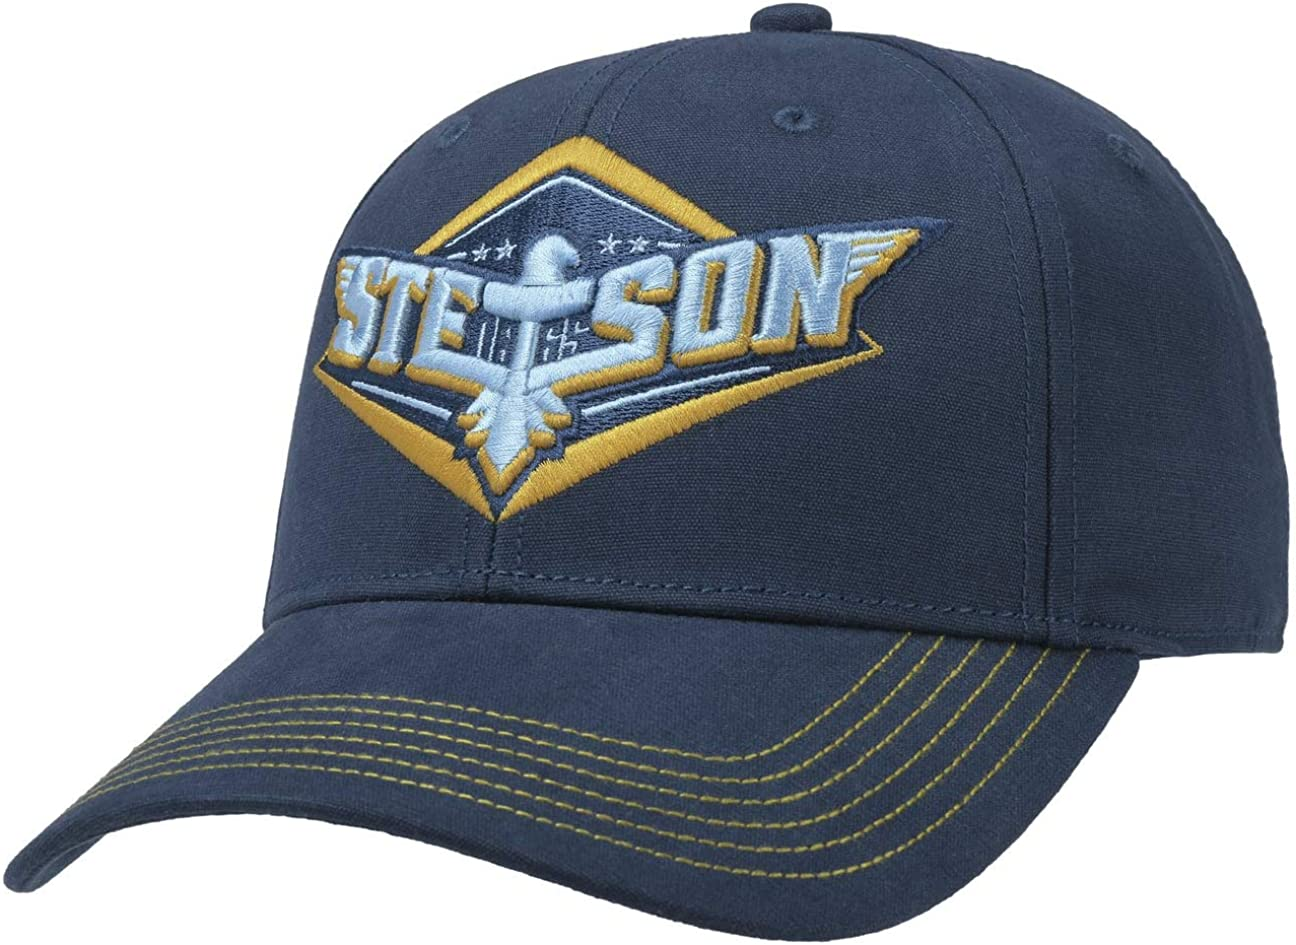 Stetson Eagle Lettering All stores are sold - Men Cap Industry No. 1